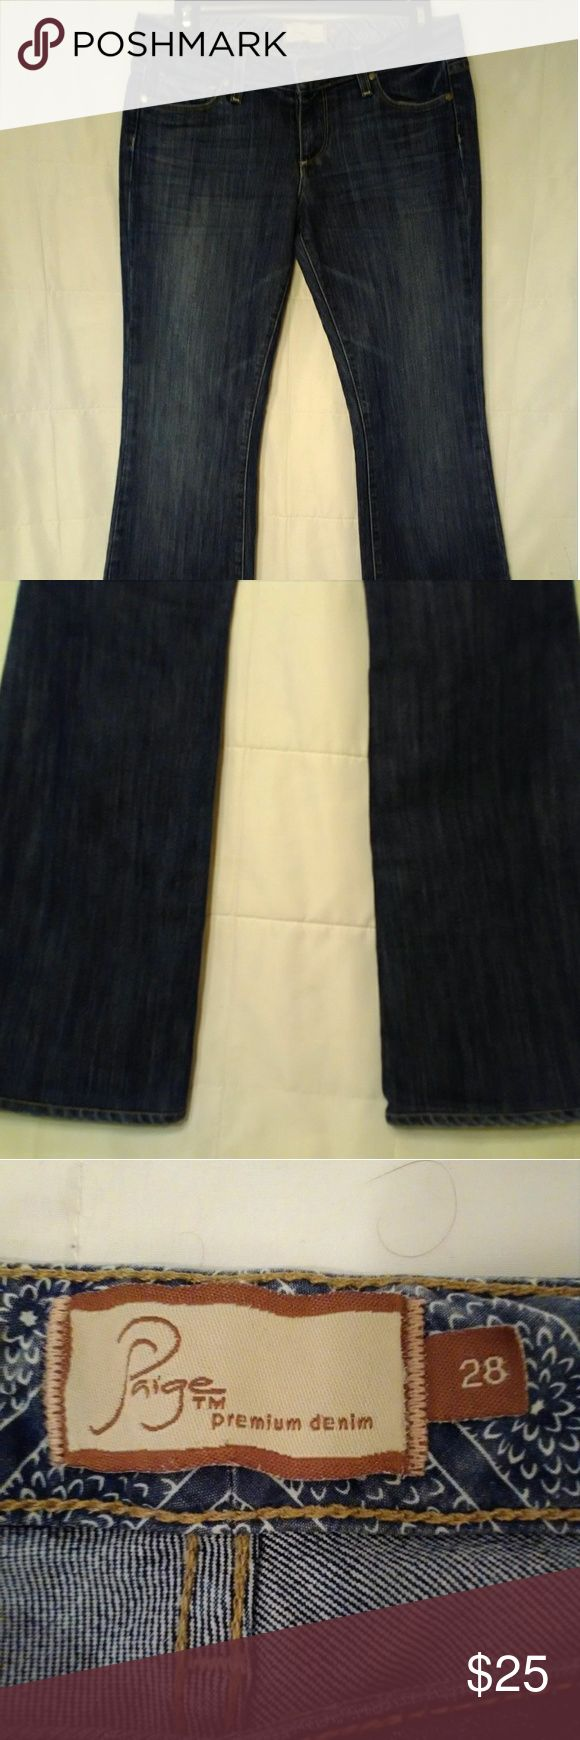 """Paige Premium Denim Boot Cut Jeans Laurel Canyon Boot cut stretch.  Very lightly worn. In excellent condition!  Measurements: Waist - 30"""" (tag reads 28) Inseam - 31"""" Paige Jeans Jeans Boot Cut"""